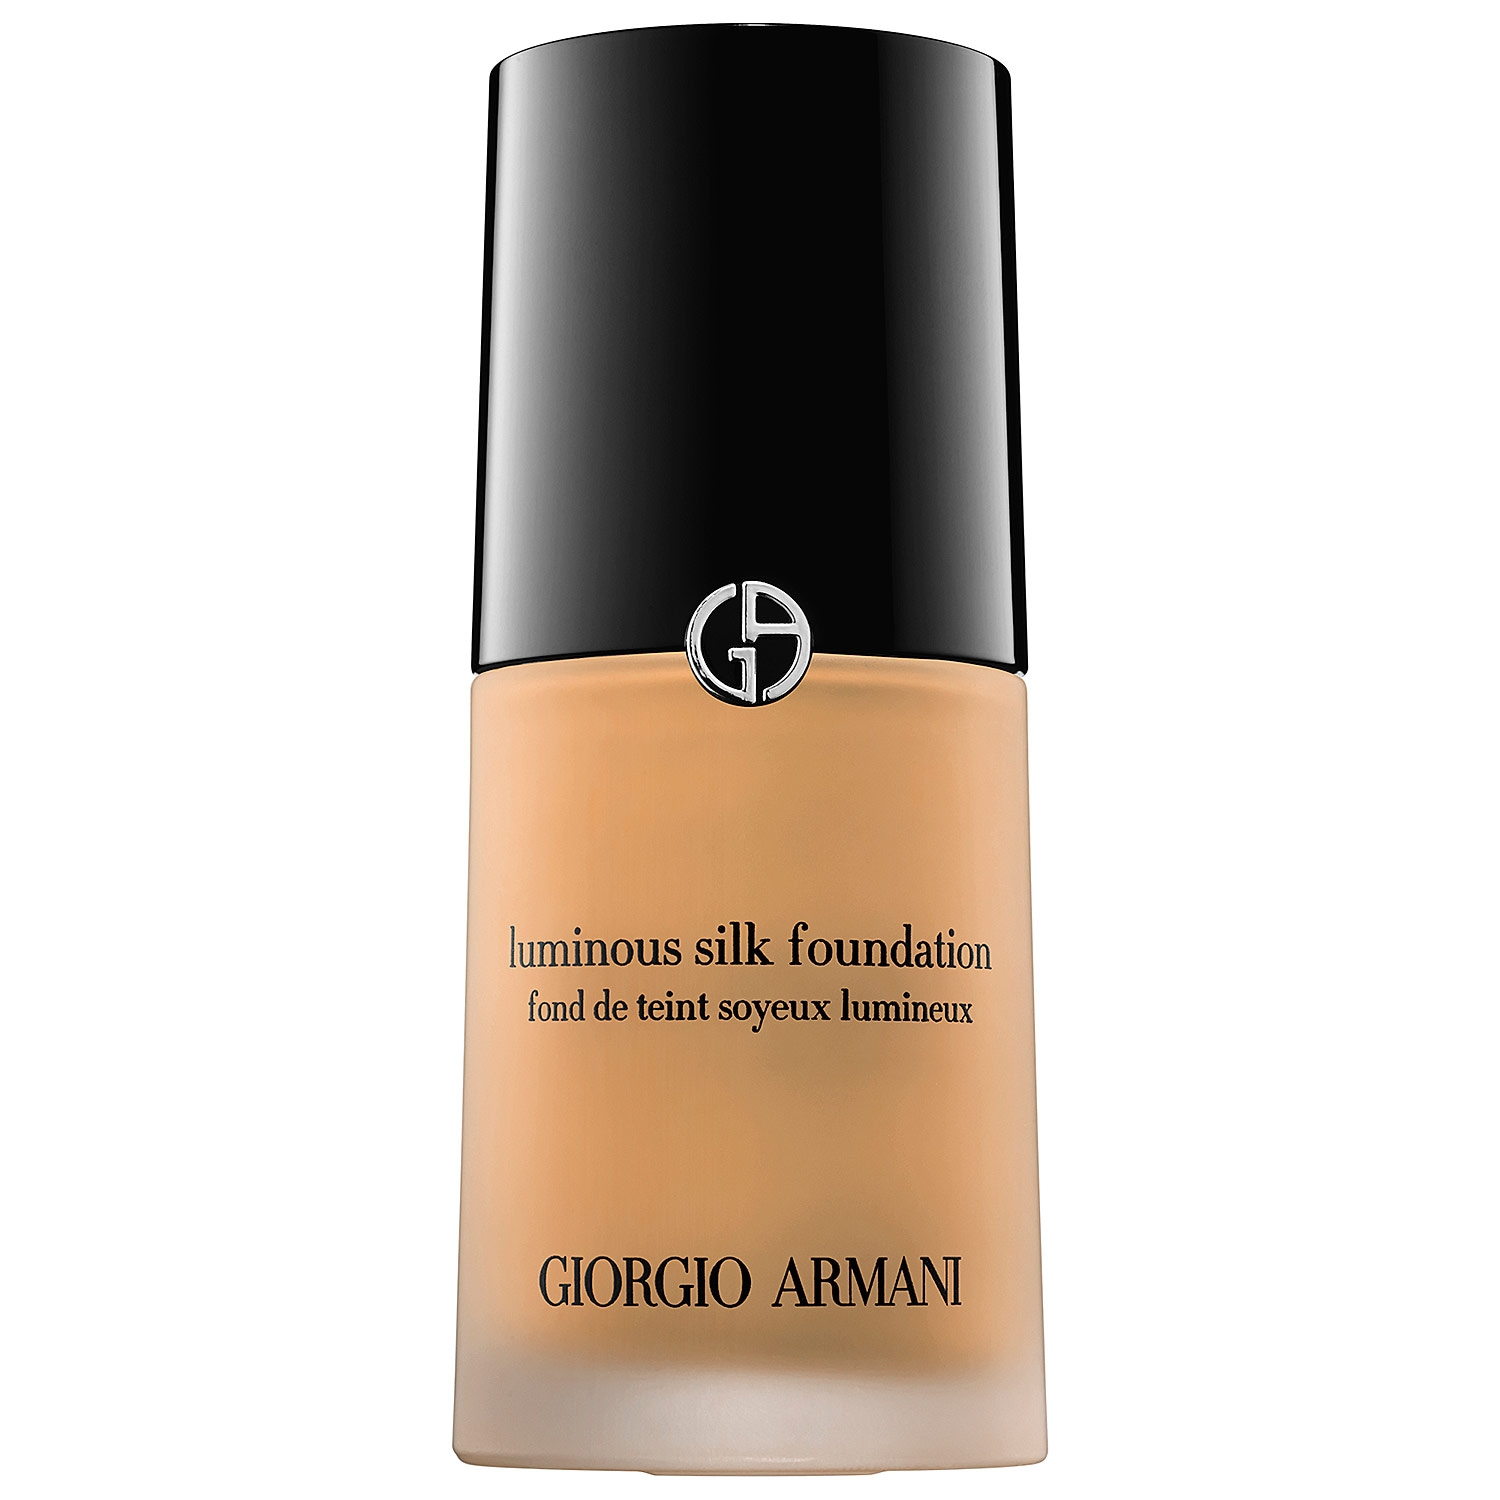 Luminous Silk Foundation - 3.5